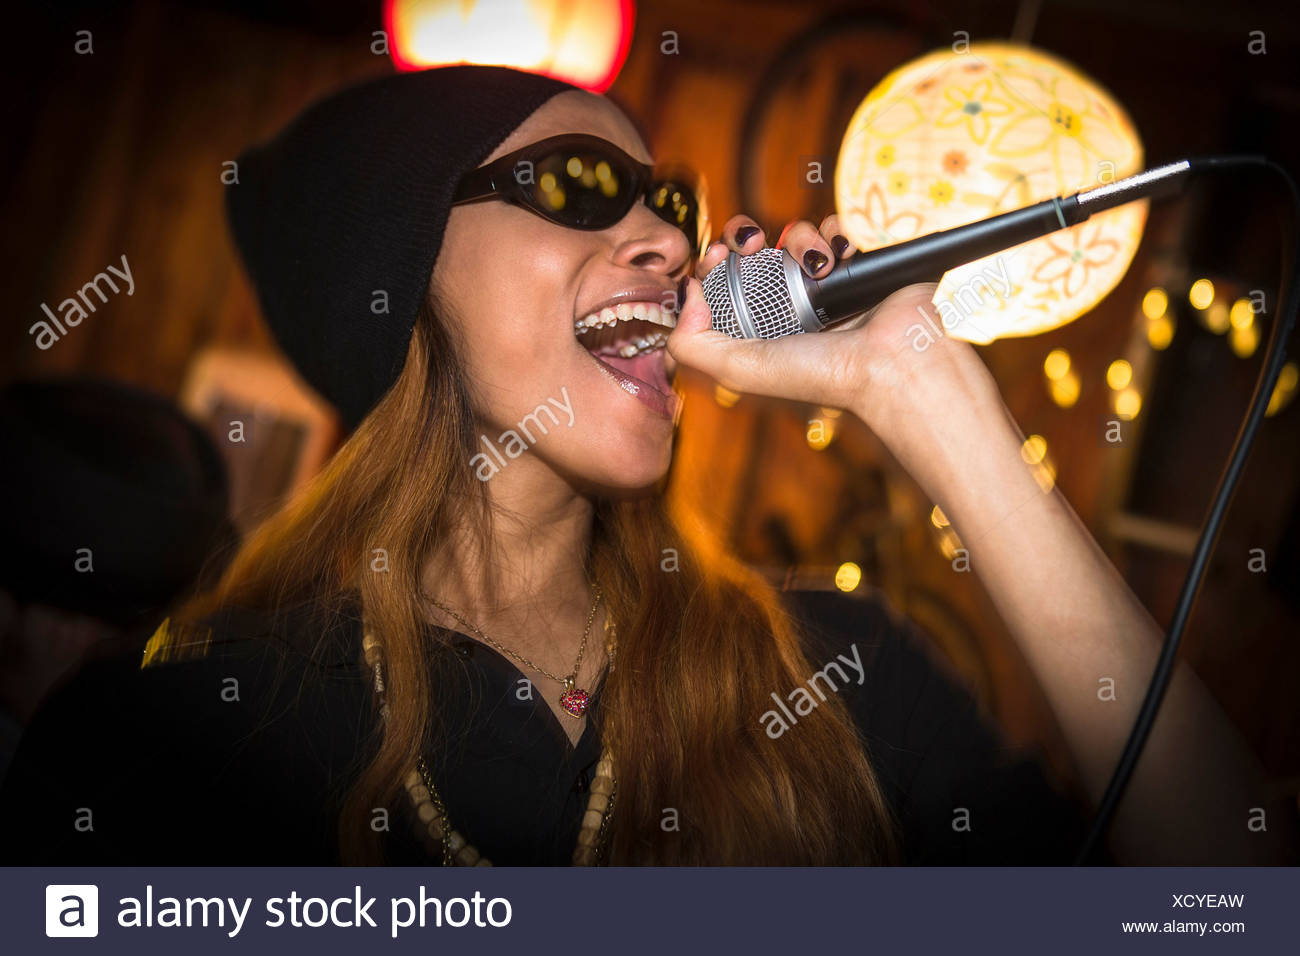 Woman wearing hat and sunglasses singing in microphone Stock Photo